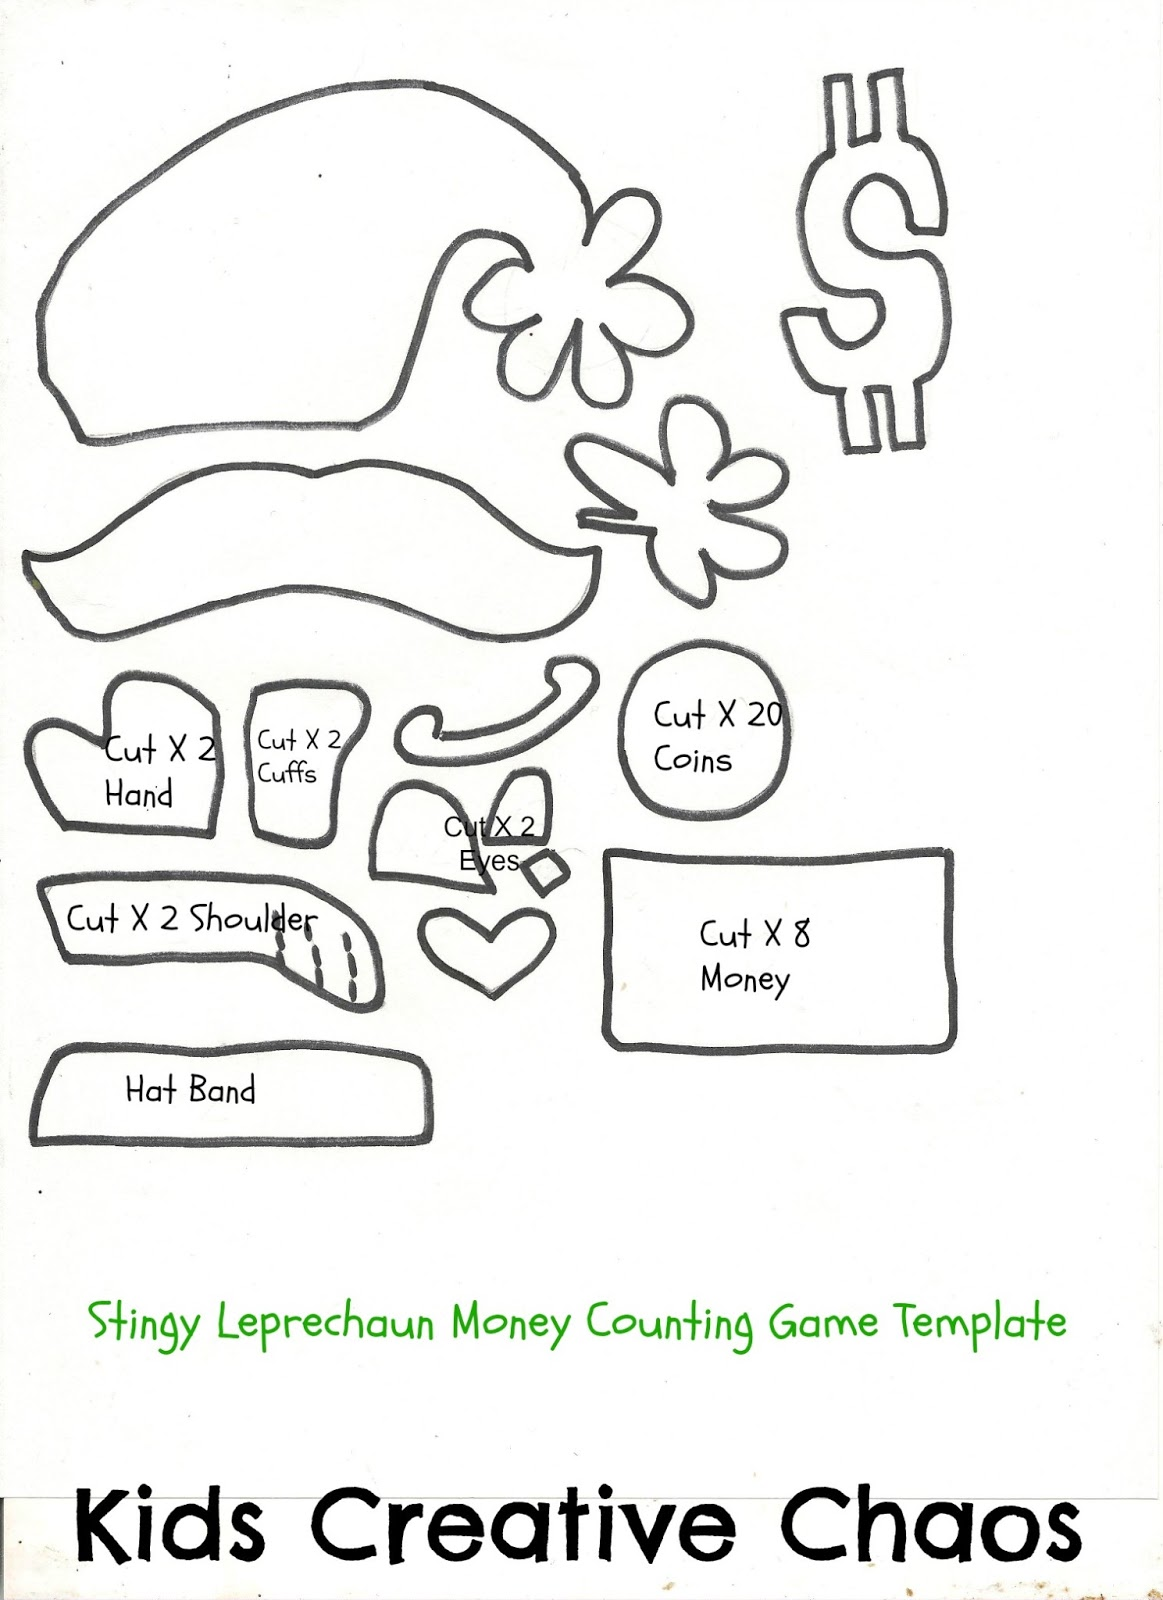 saint patrick u0027s day math game the stingy leprechaun counting money